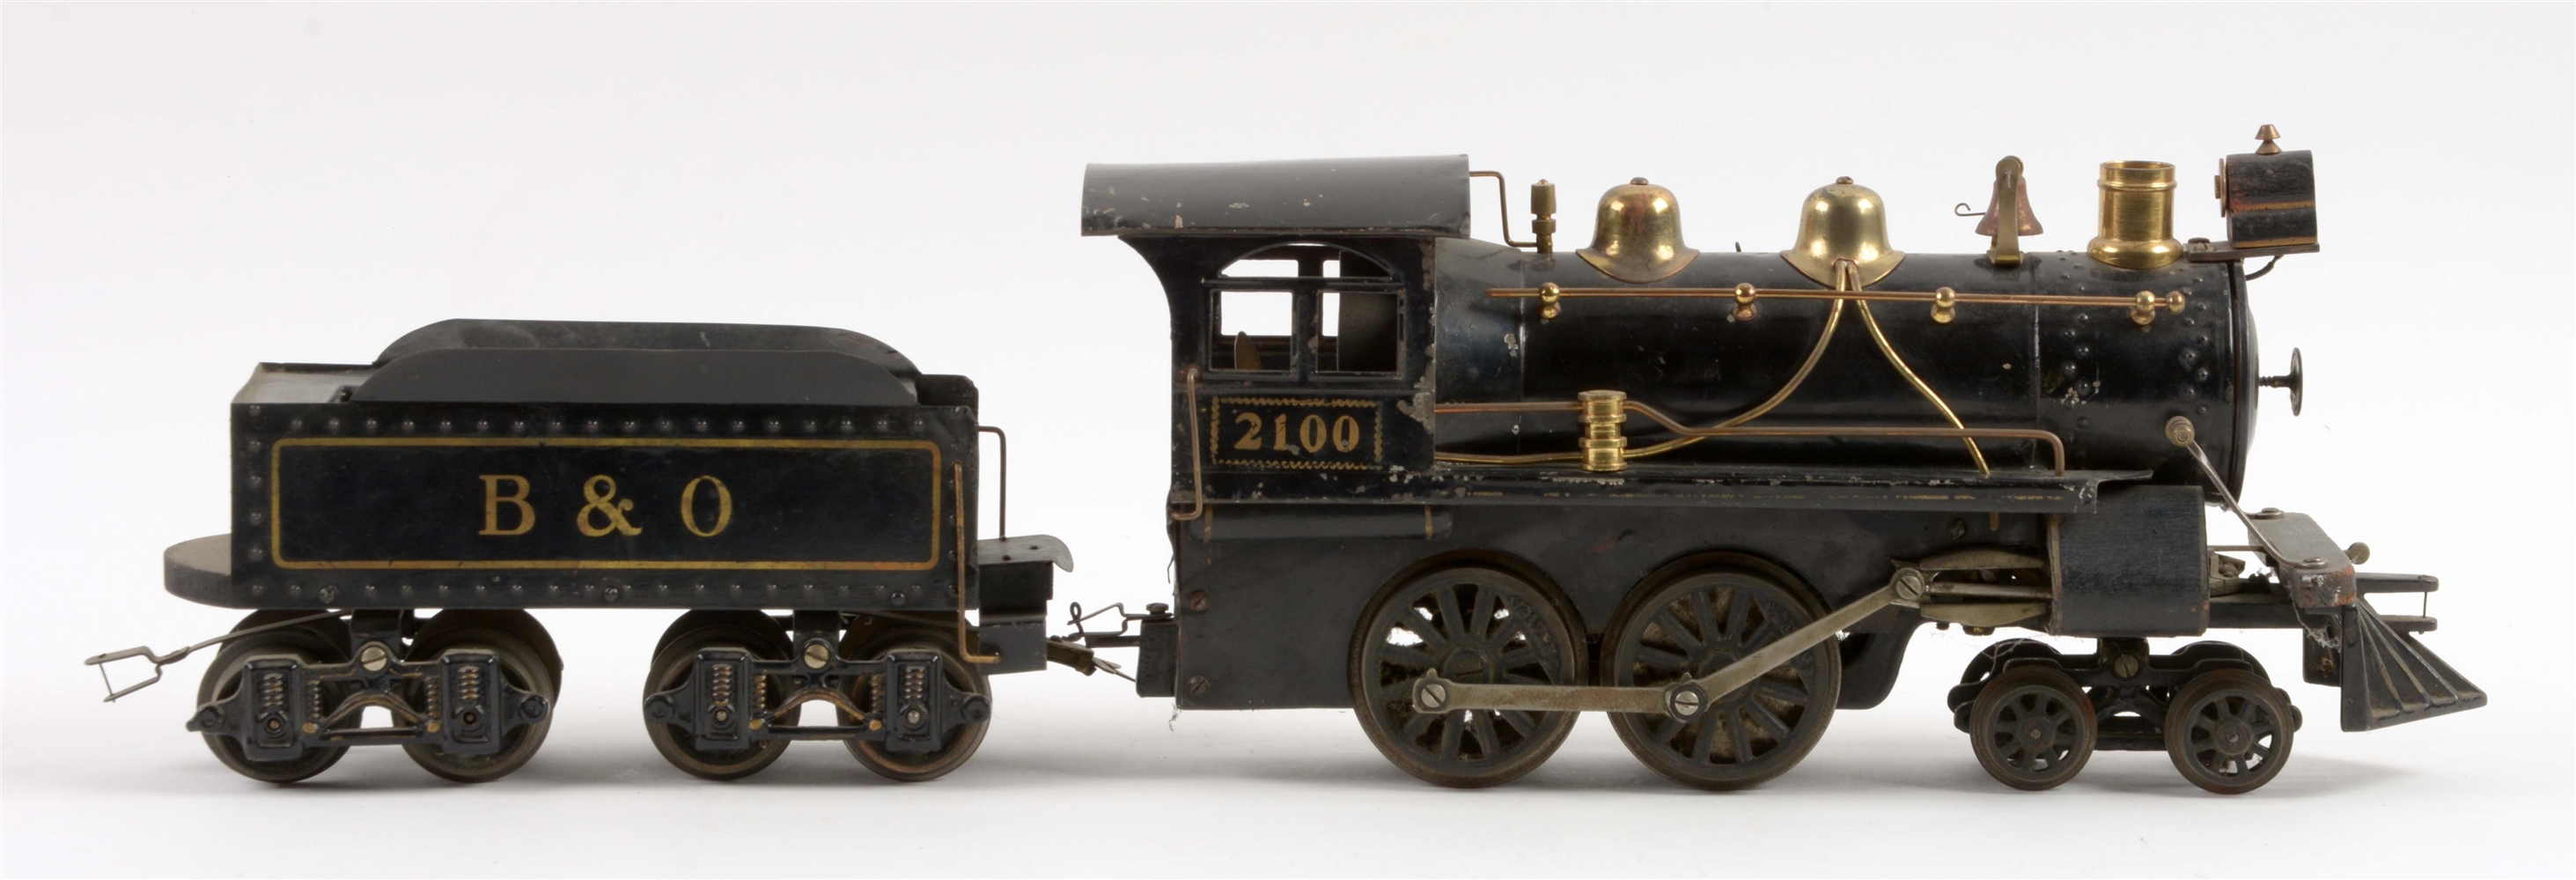 Lot Of 2: Very Early Voltamp No. 2100 Engine with B&O Tender.